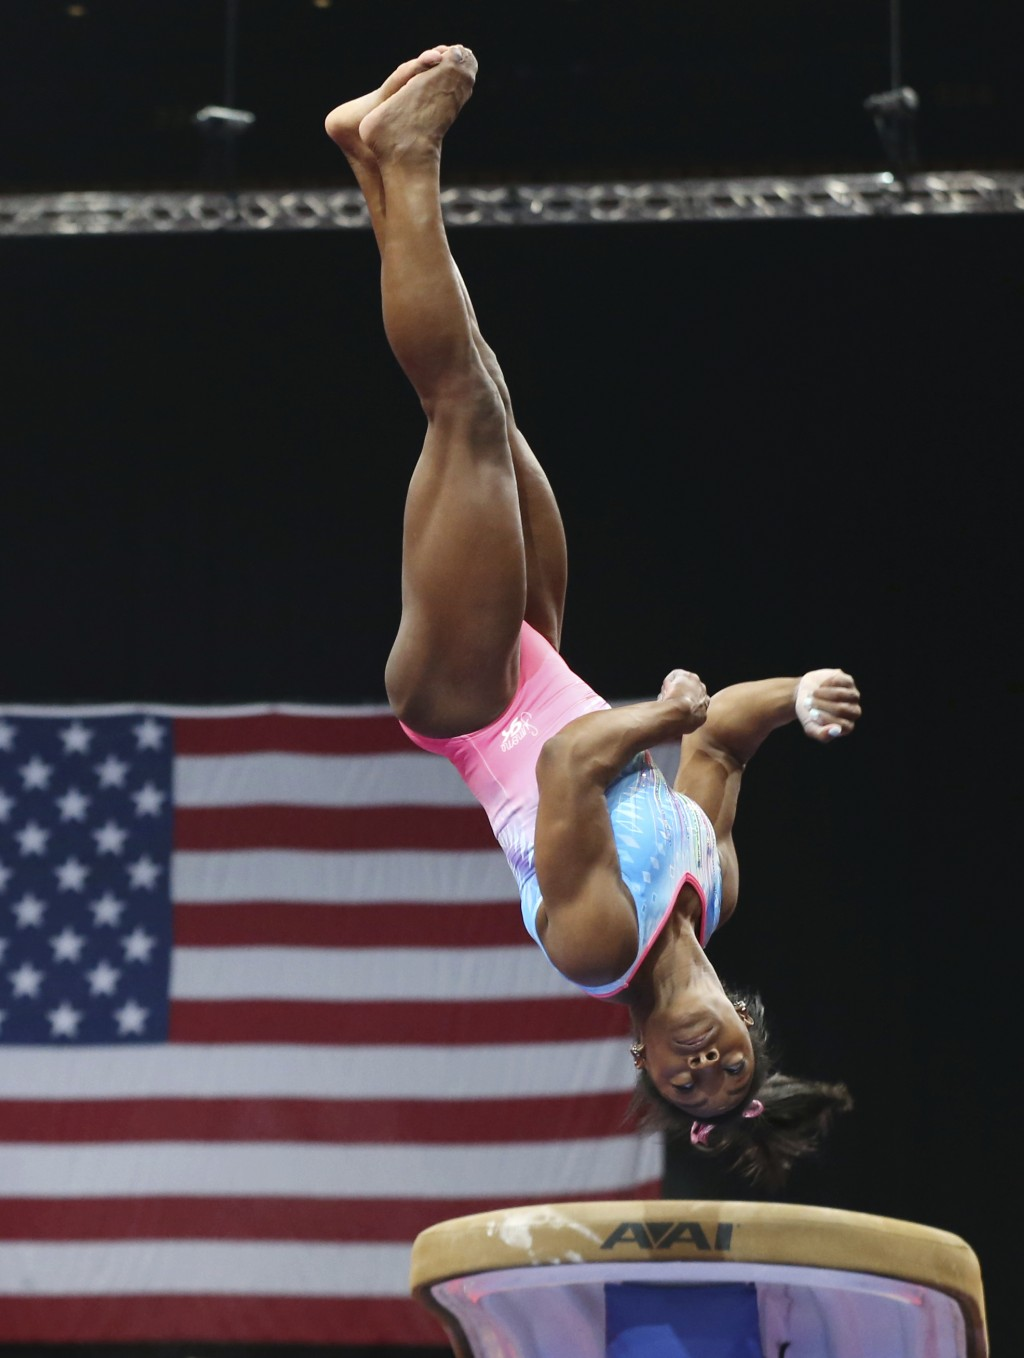 Simone Biles practices on the vault during a training session at the U.S. Gymnastics Championships, Wednesday, Aug. 15, 2018, in Boston. (AP Photo/Eli...